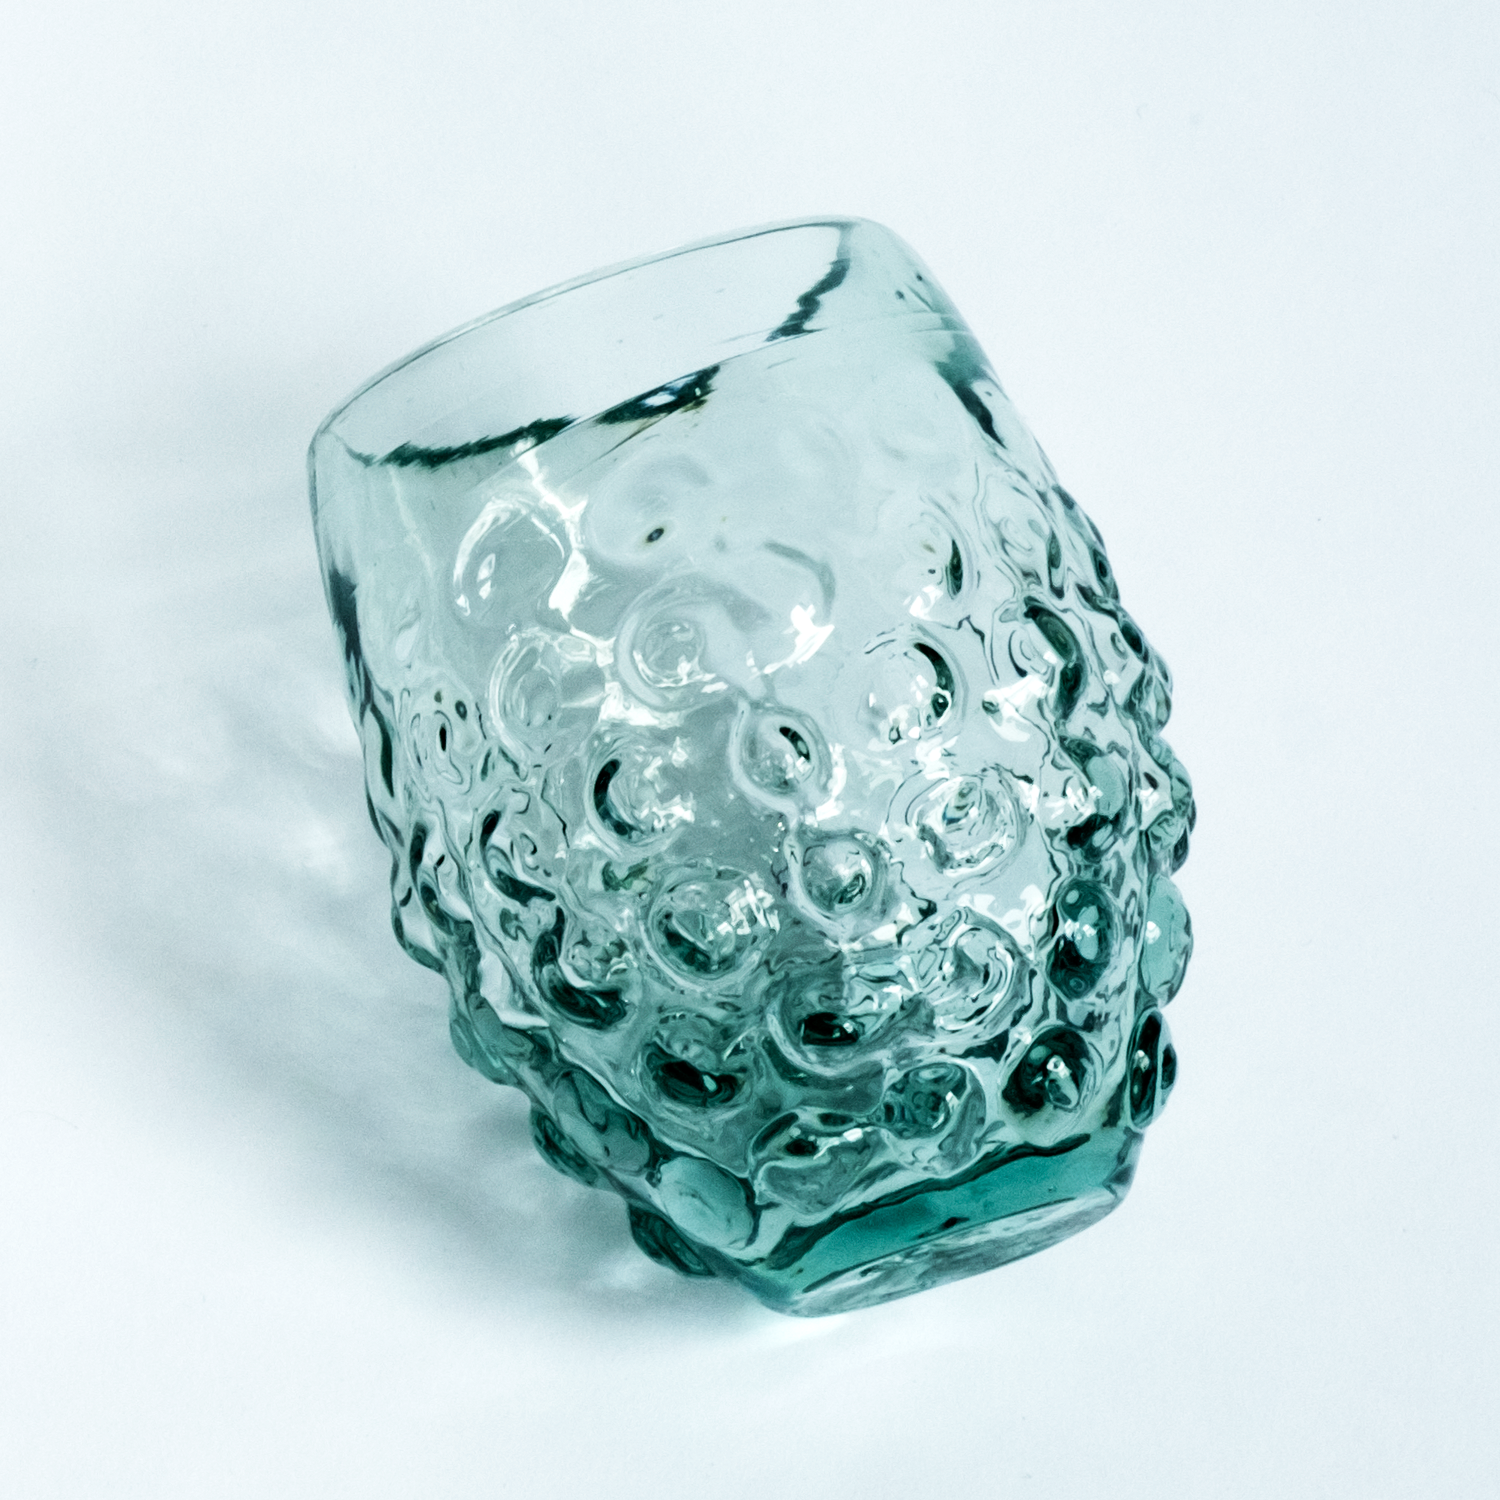 3xStudio_Objects_D_glass.png